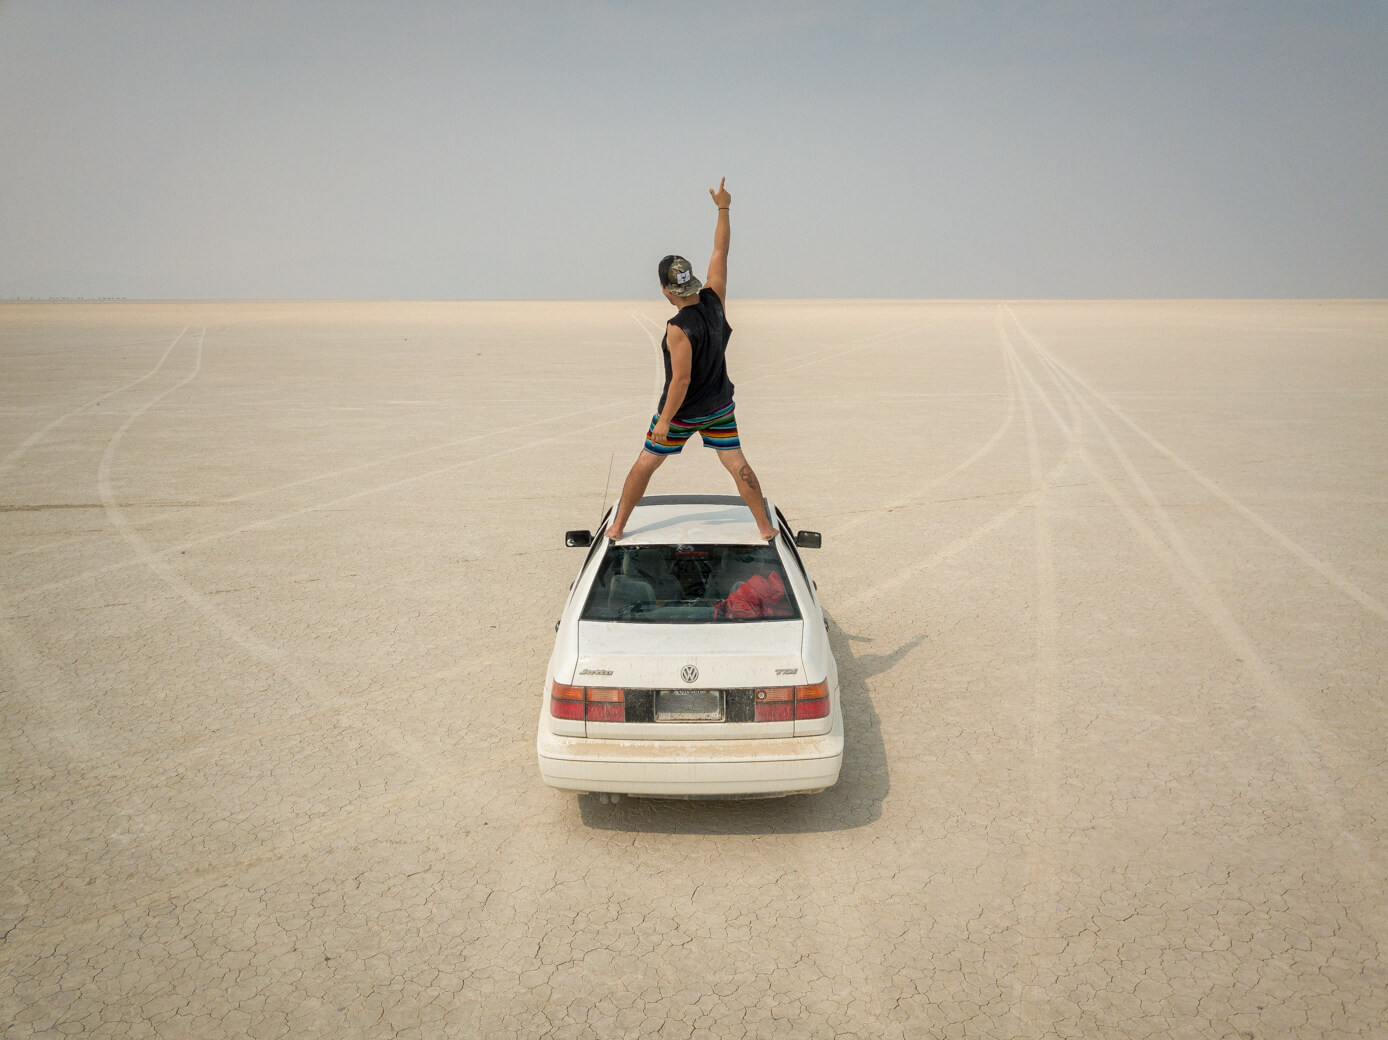 Man standing on car in Alvord Desert